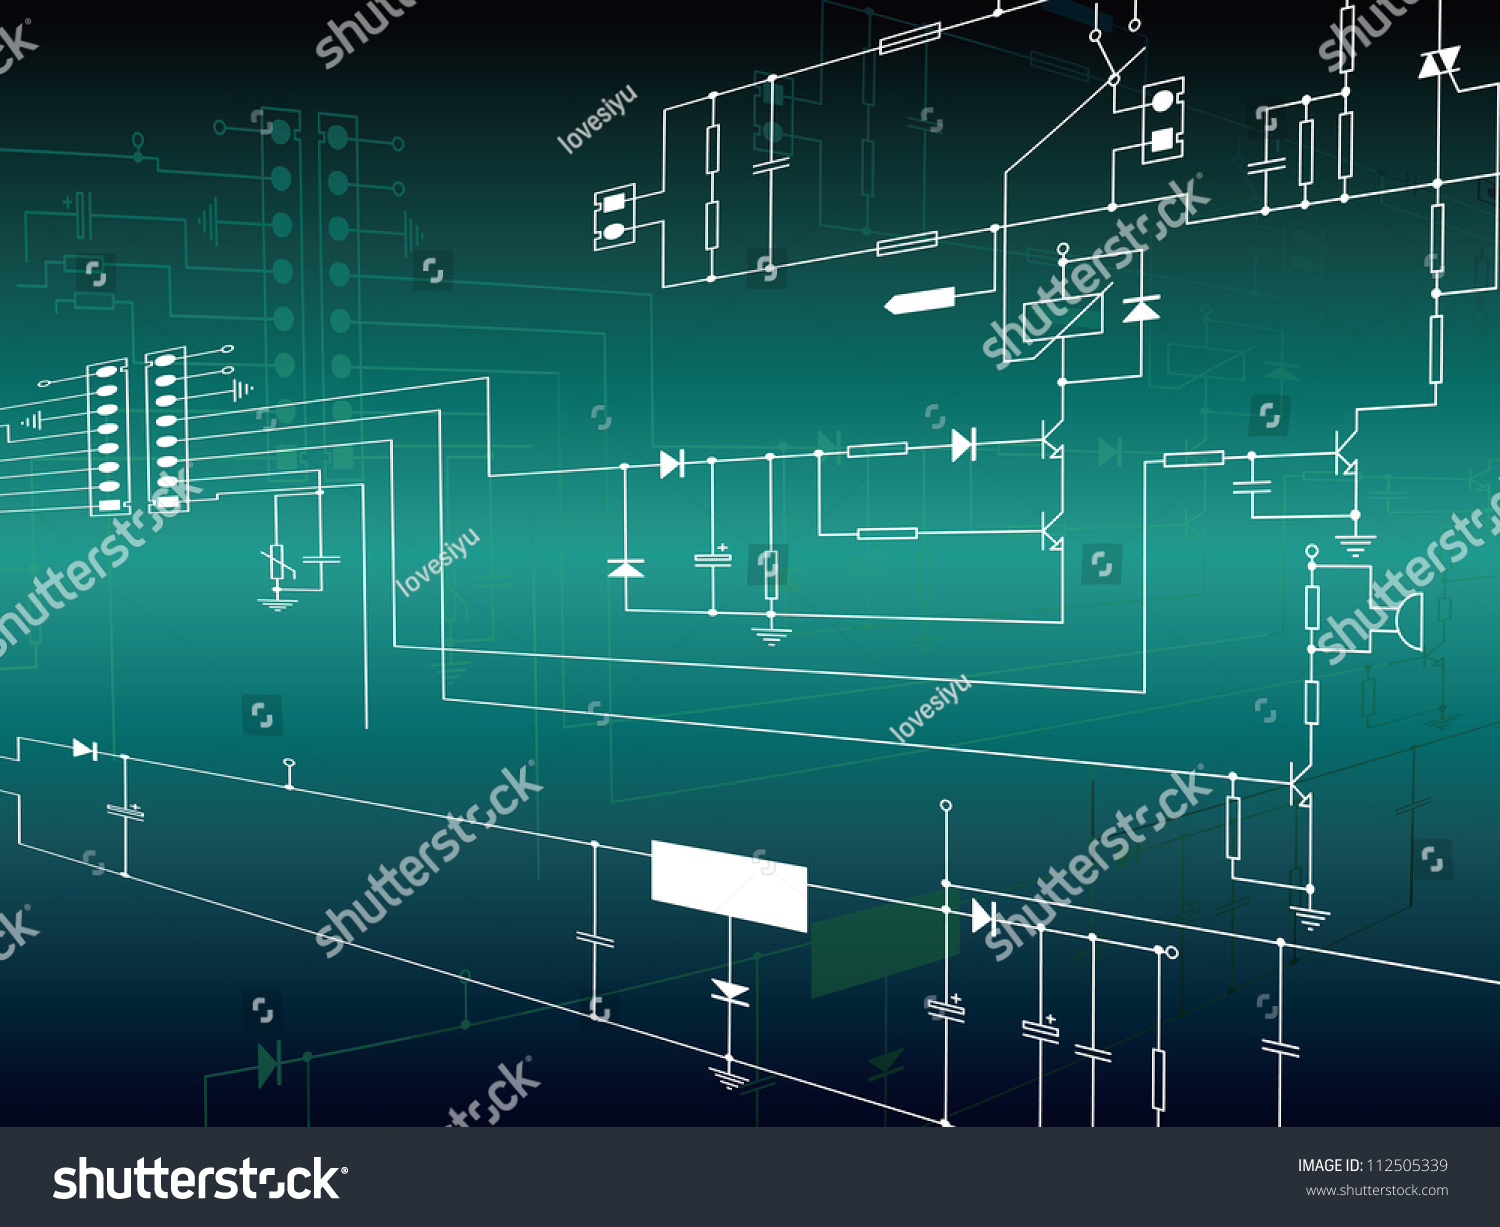 Electronics Background Circuit Diagrams Stock Vector (Royalty Free ...